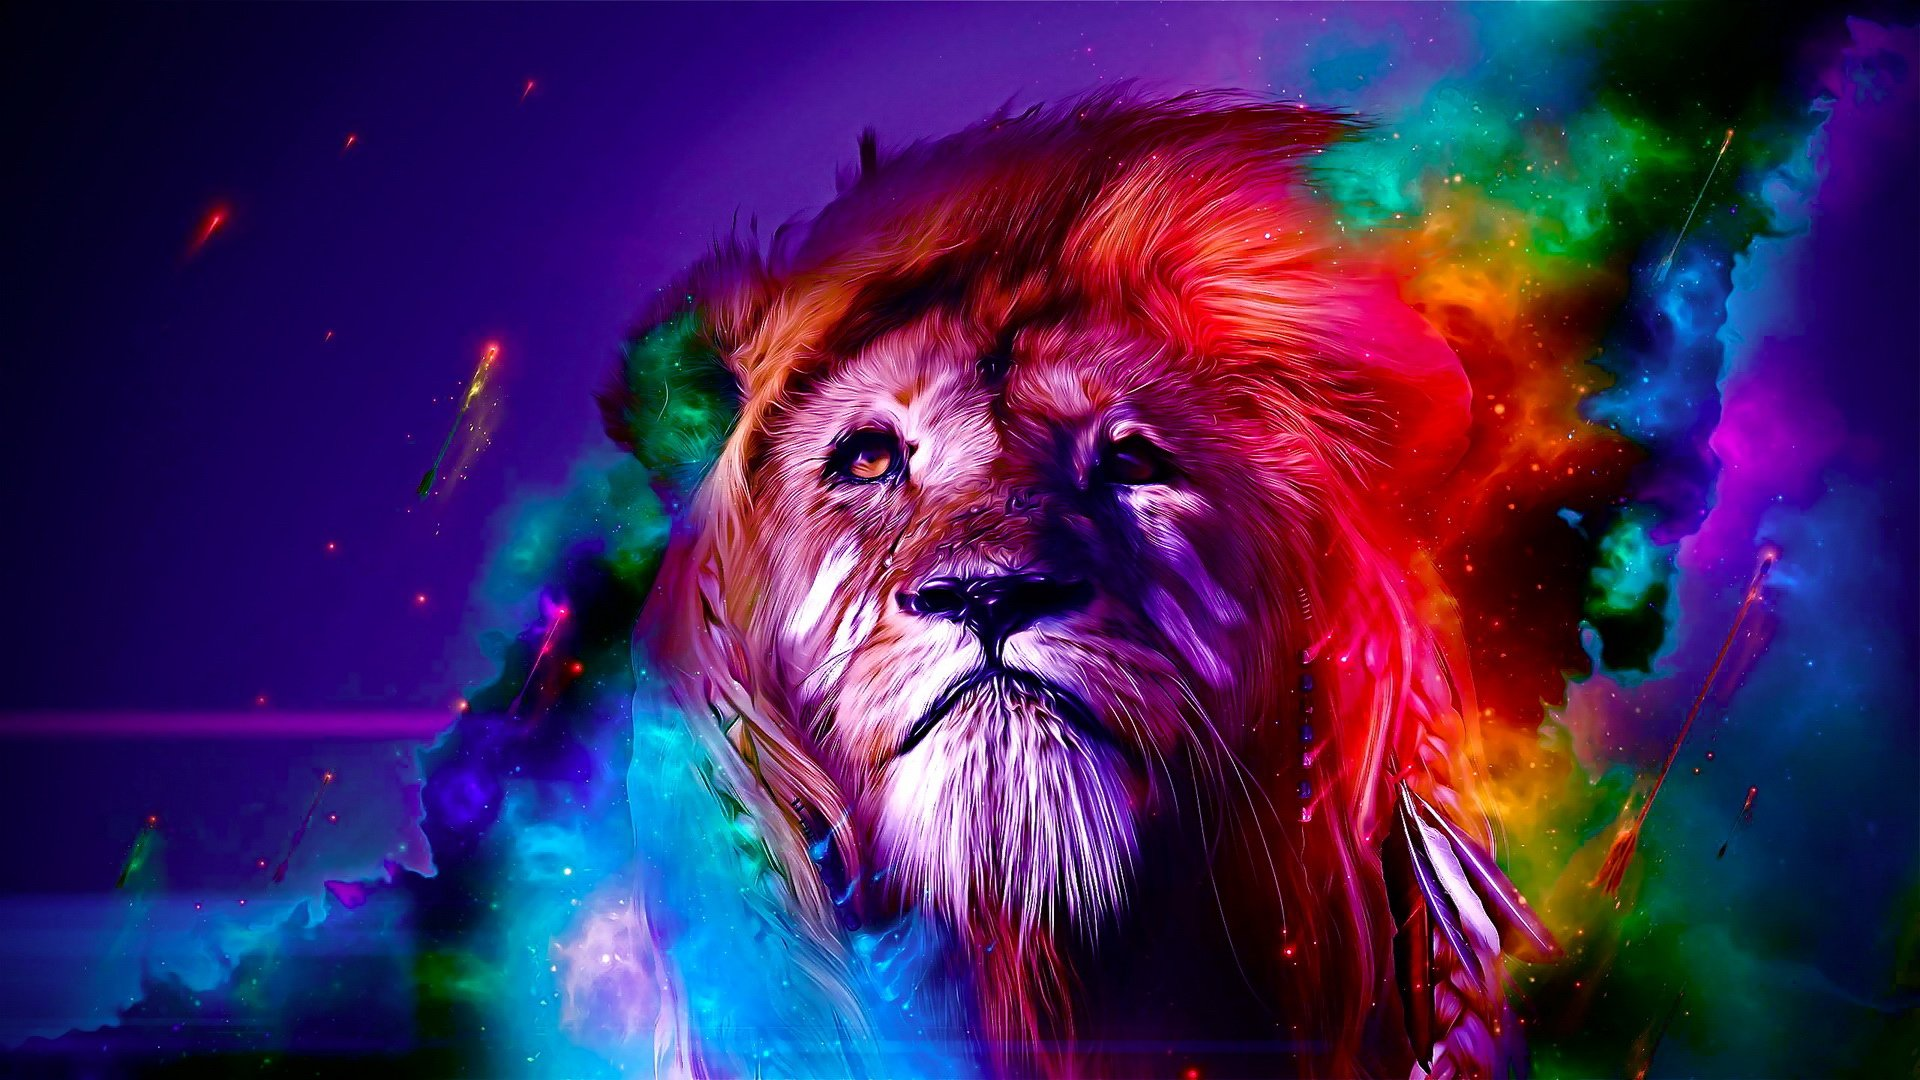 colorful lion wallpaper wallpapersafari